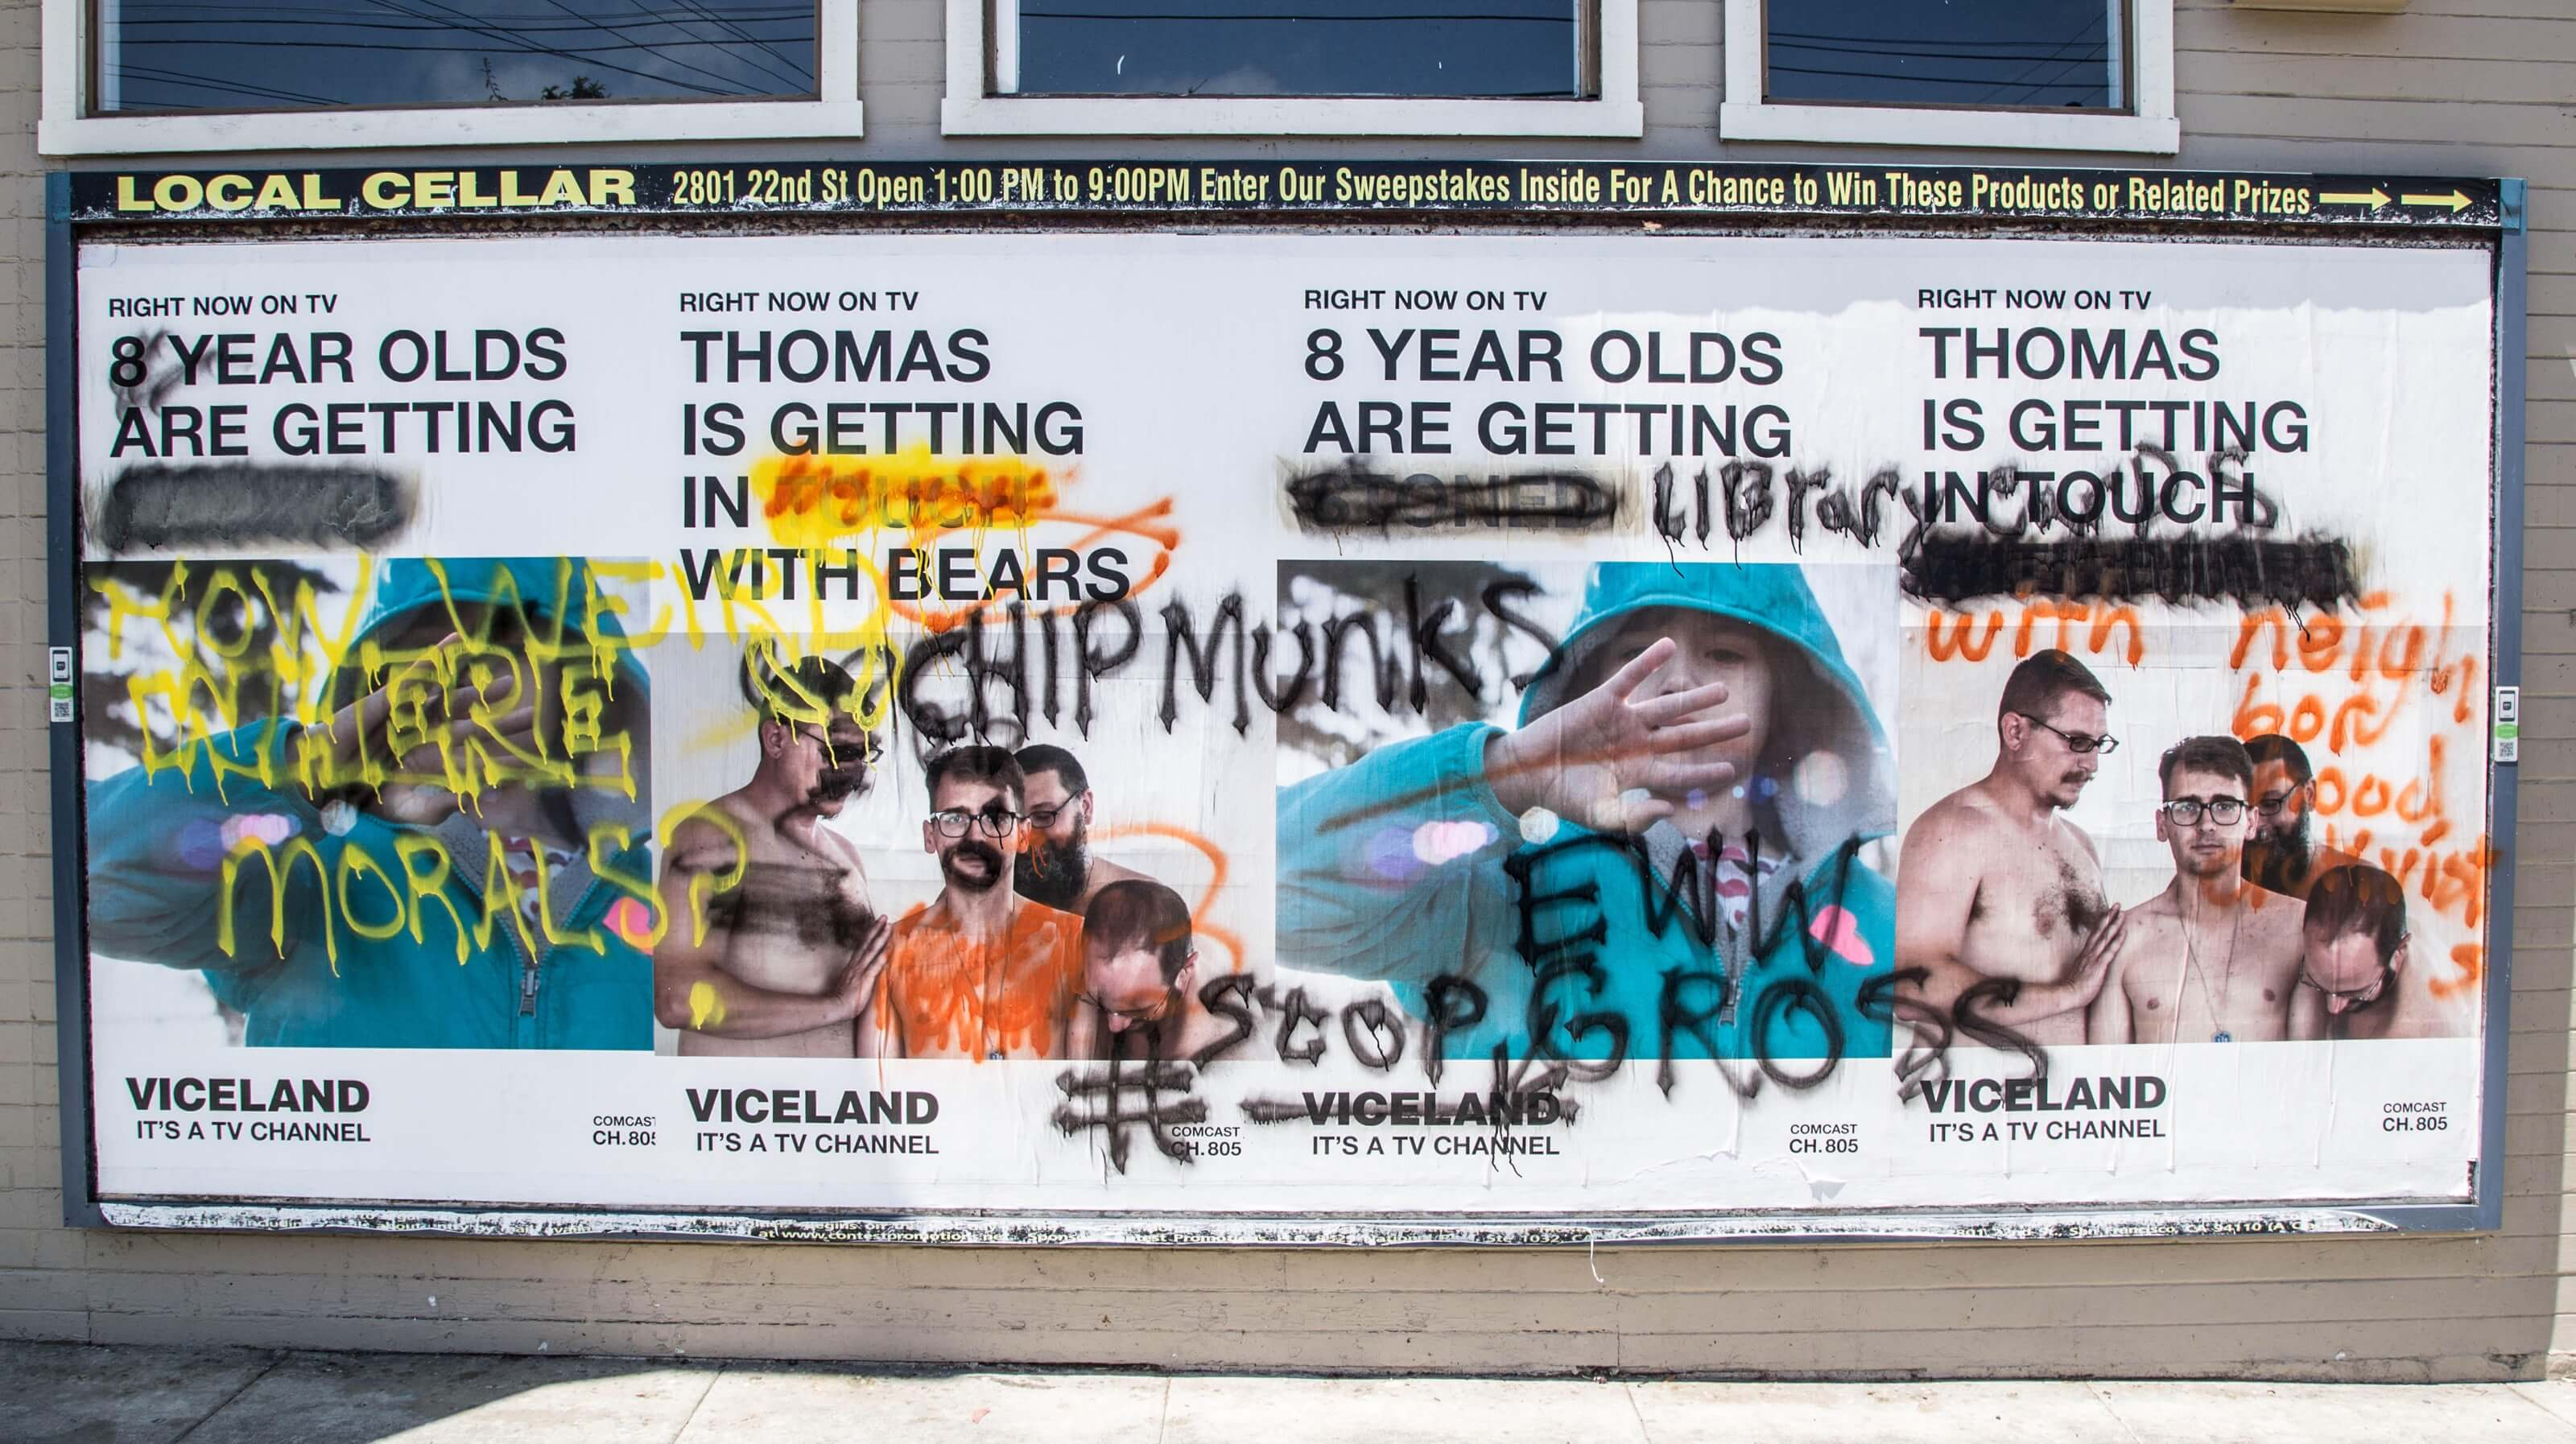 Viceland Right Now Marketing Campaign California